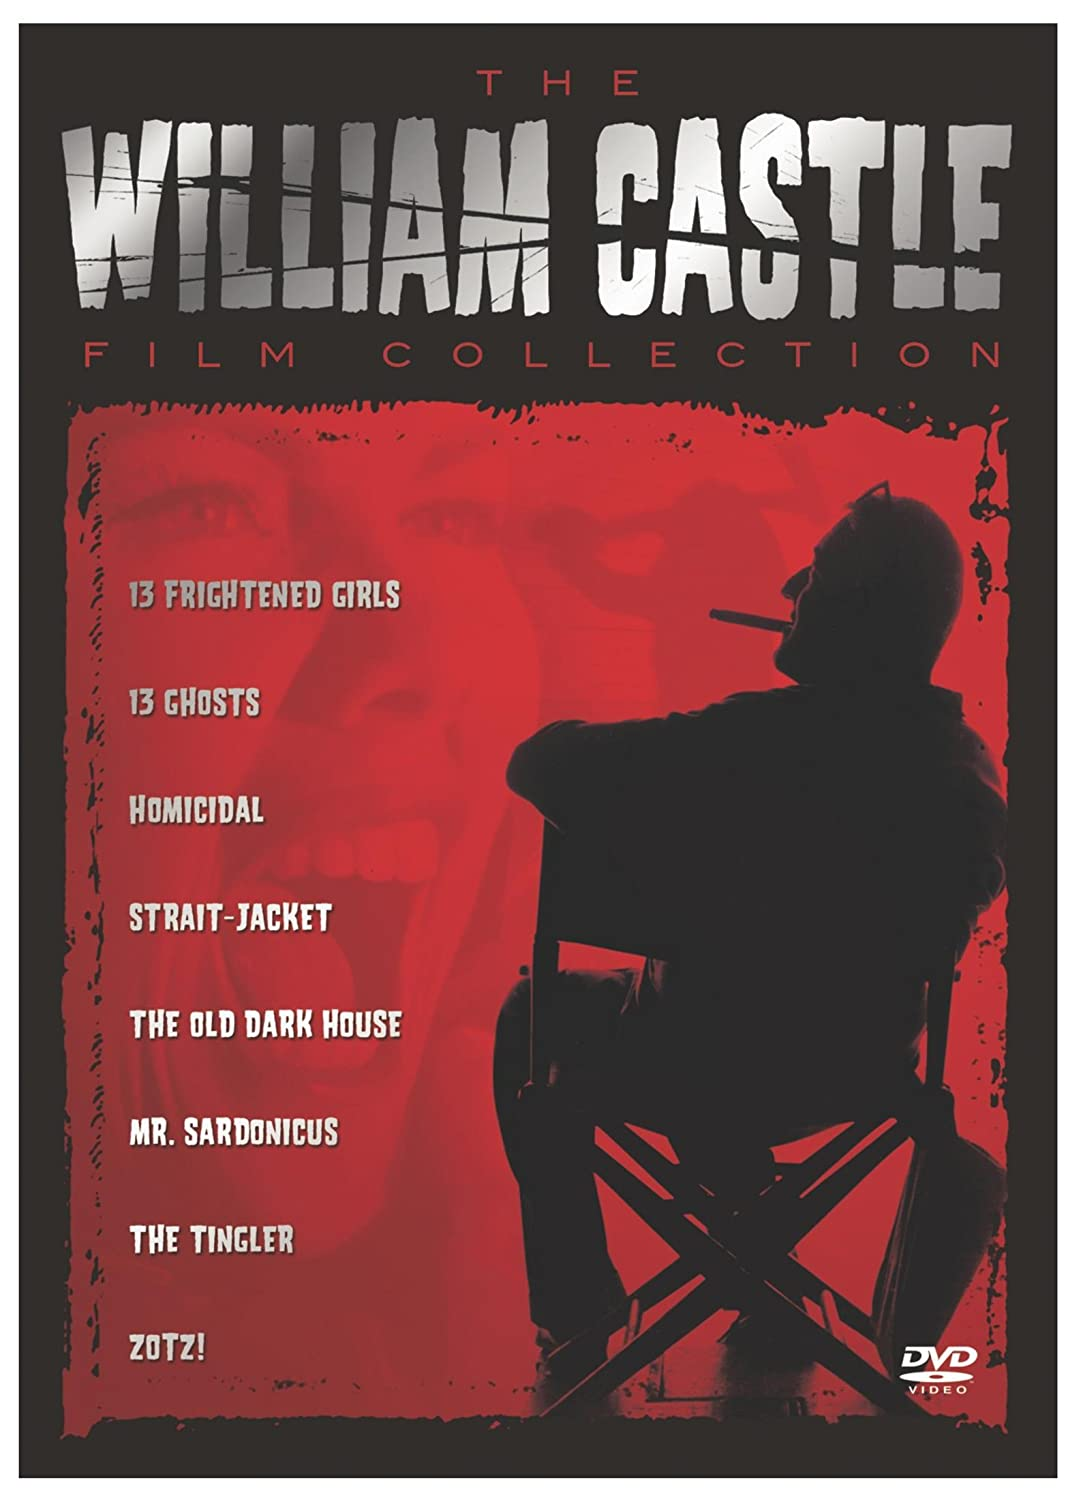 Amazon.com: The William Castle Film Collection (13 Frightened ...